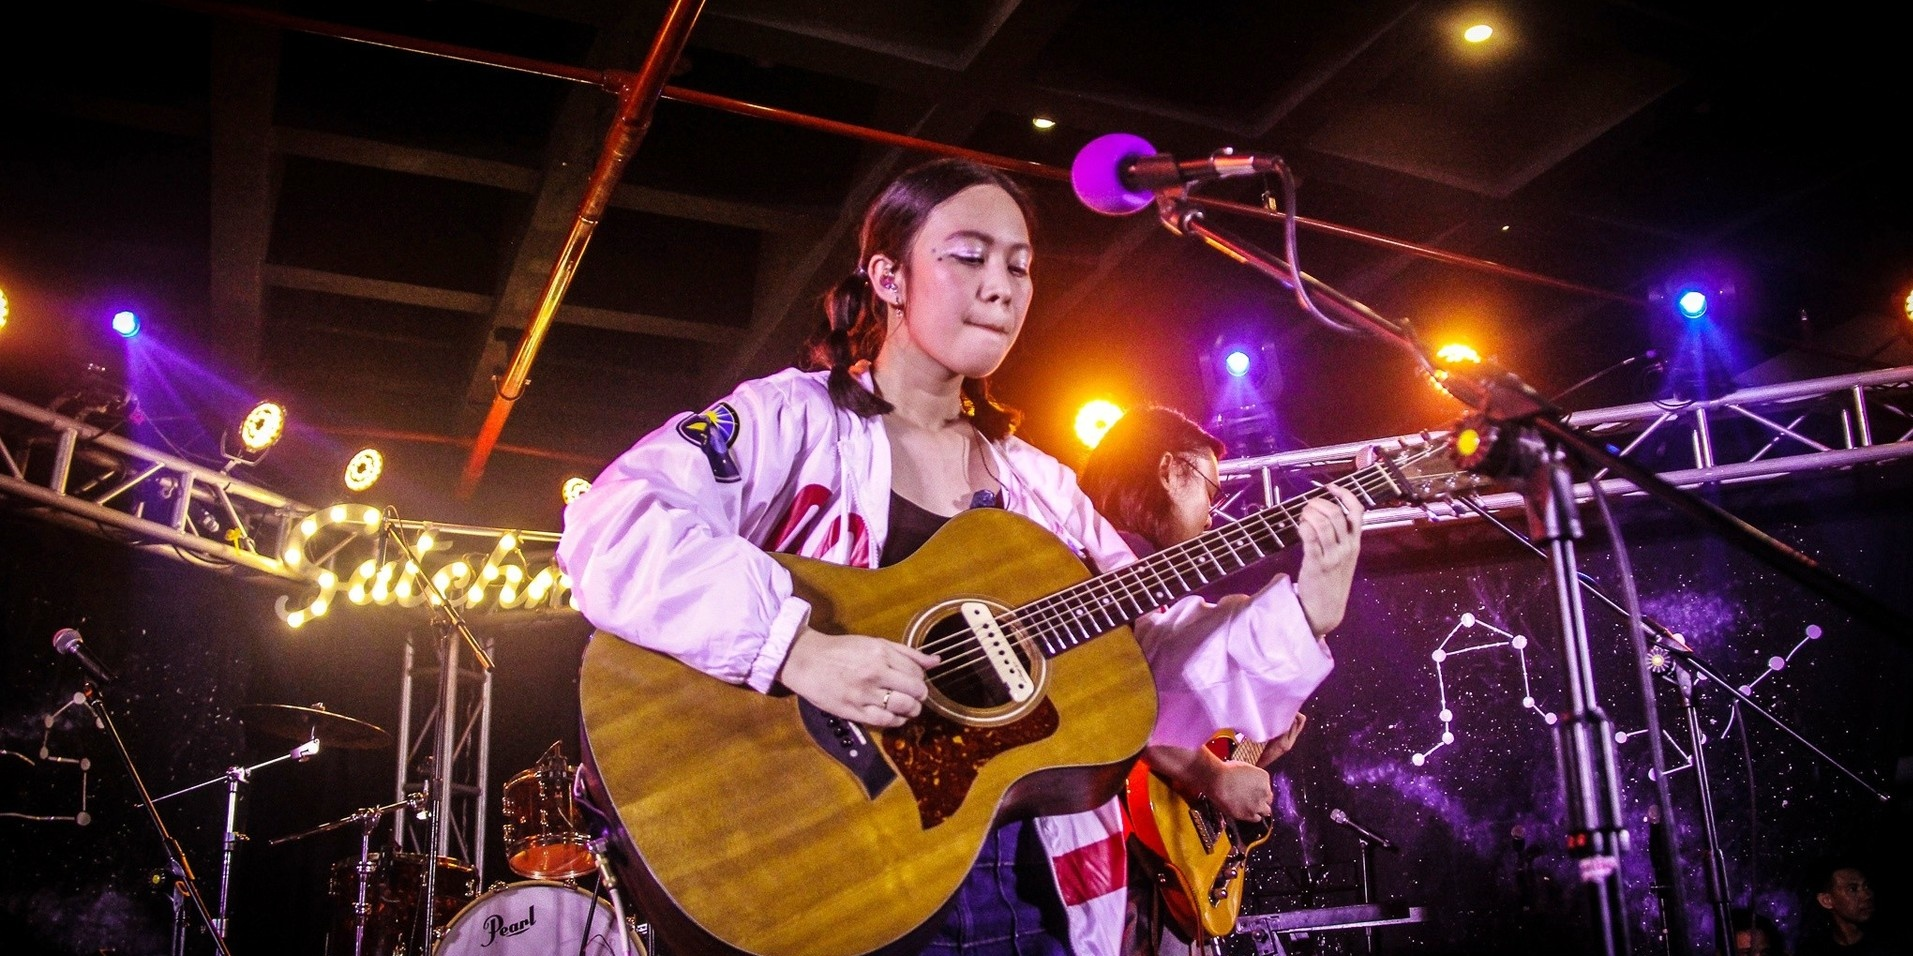 Reese Lansangan is back in the studio for second album, shares behind the scenes snippets